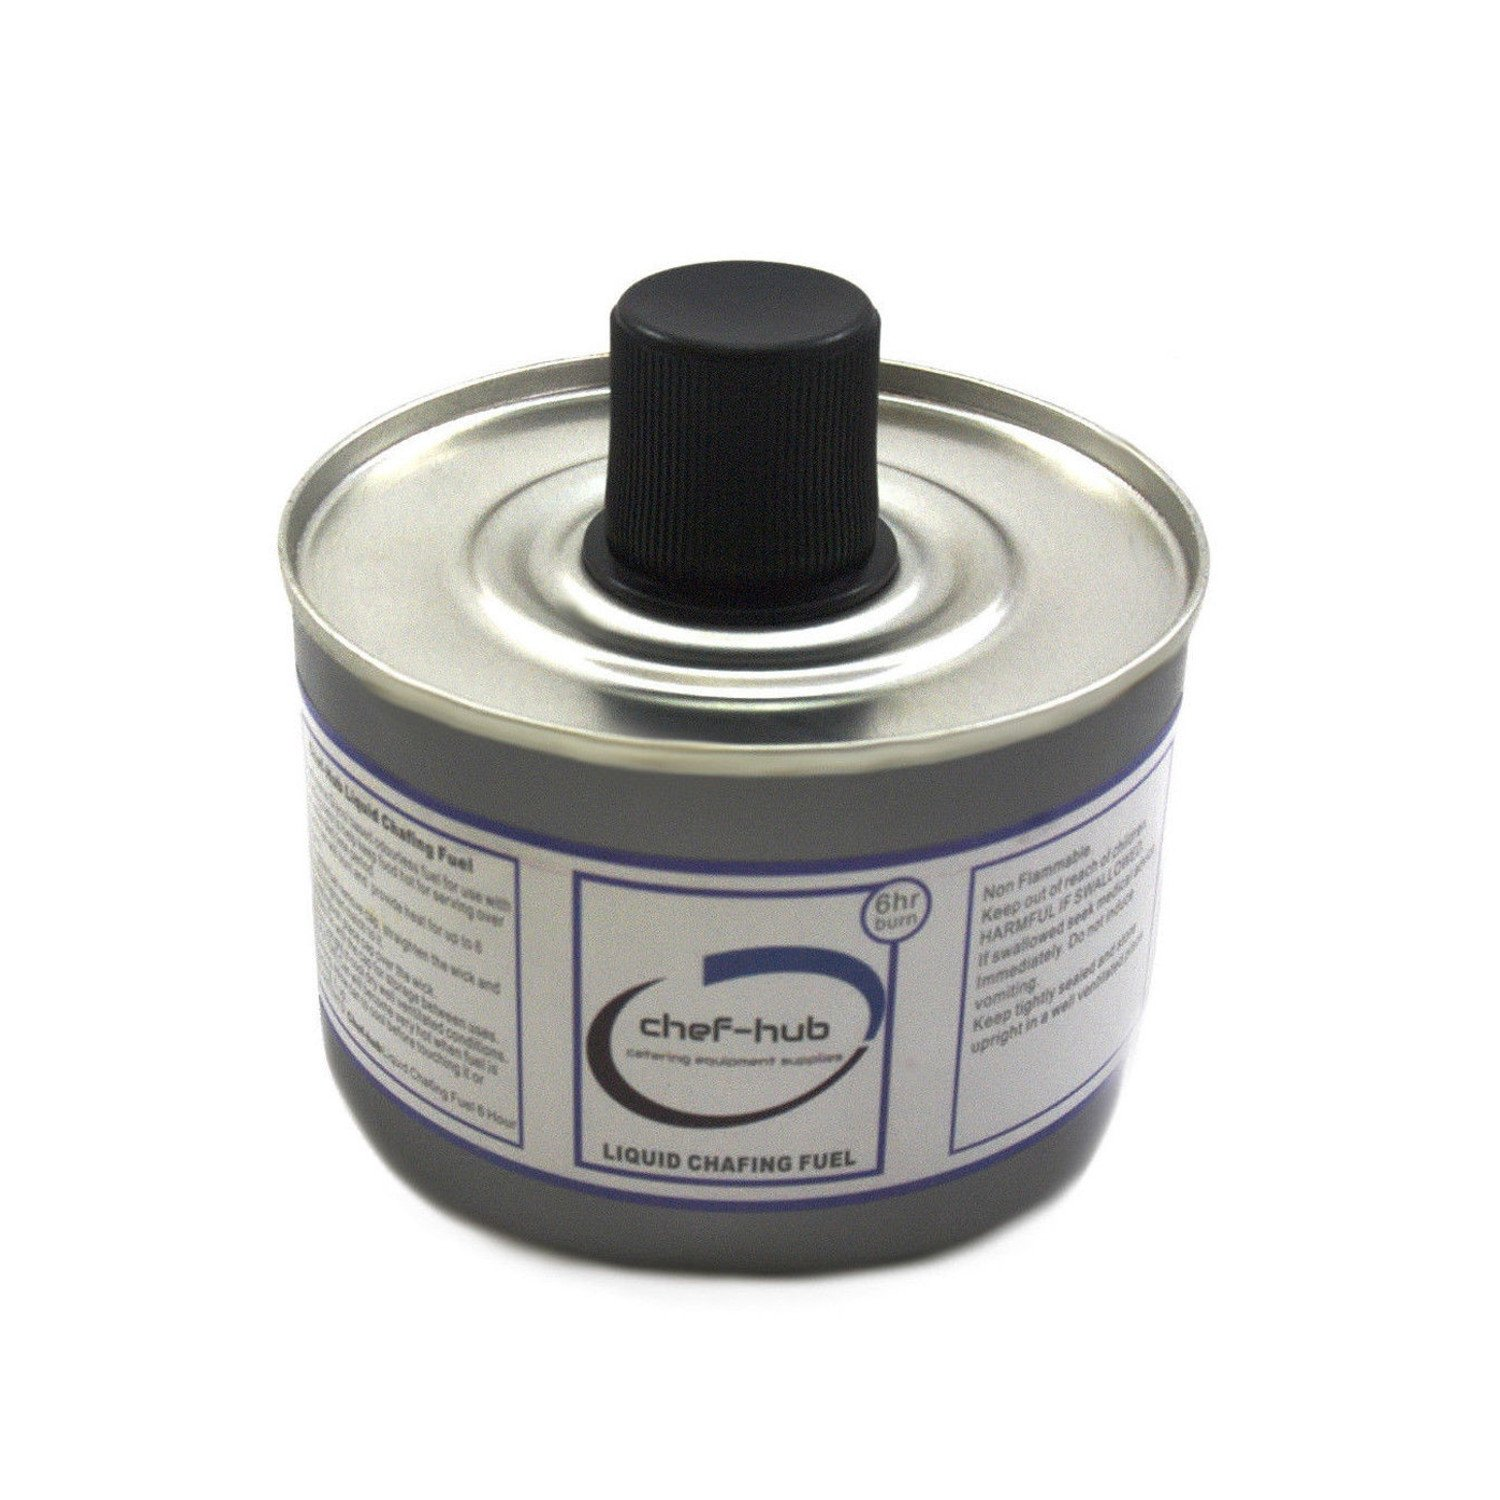 Chef-hub, 24 Tin X Chafing Fuel Liquid Gel, 6 Hour Burn Time, Stainless Steel, Ideal For Weddings, Banquets, Buffets, Hotels, and More.